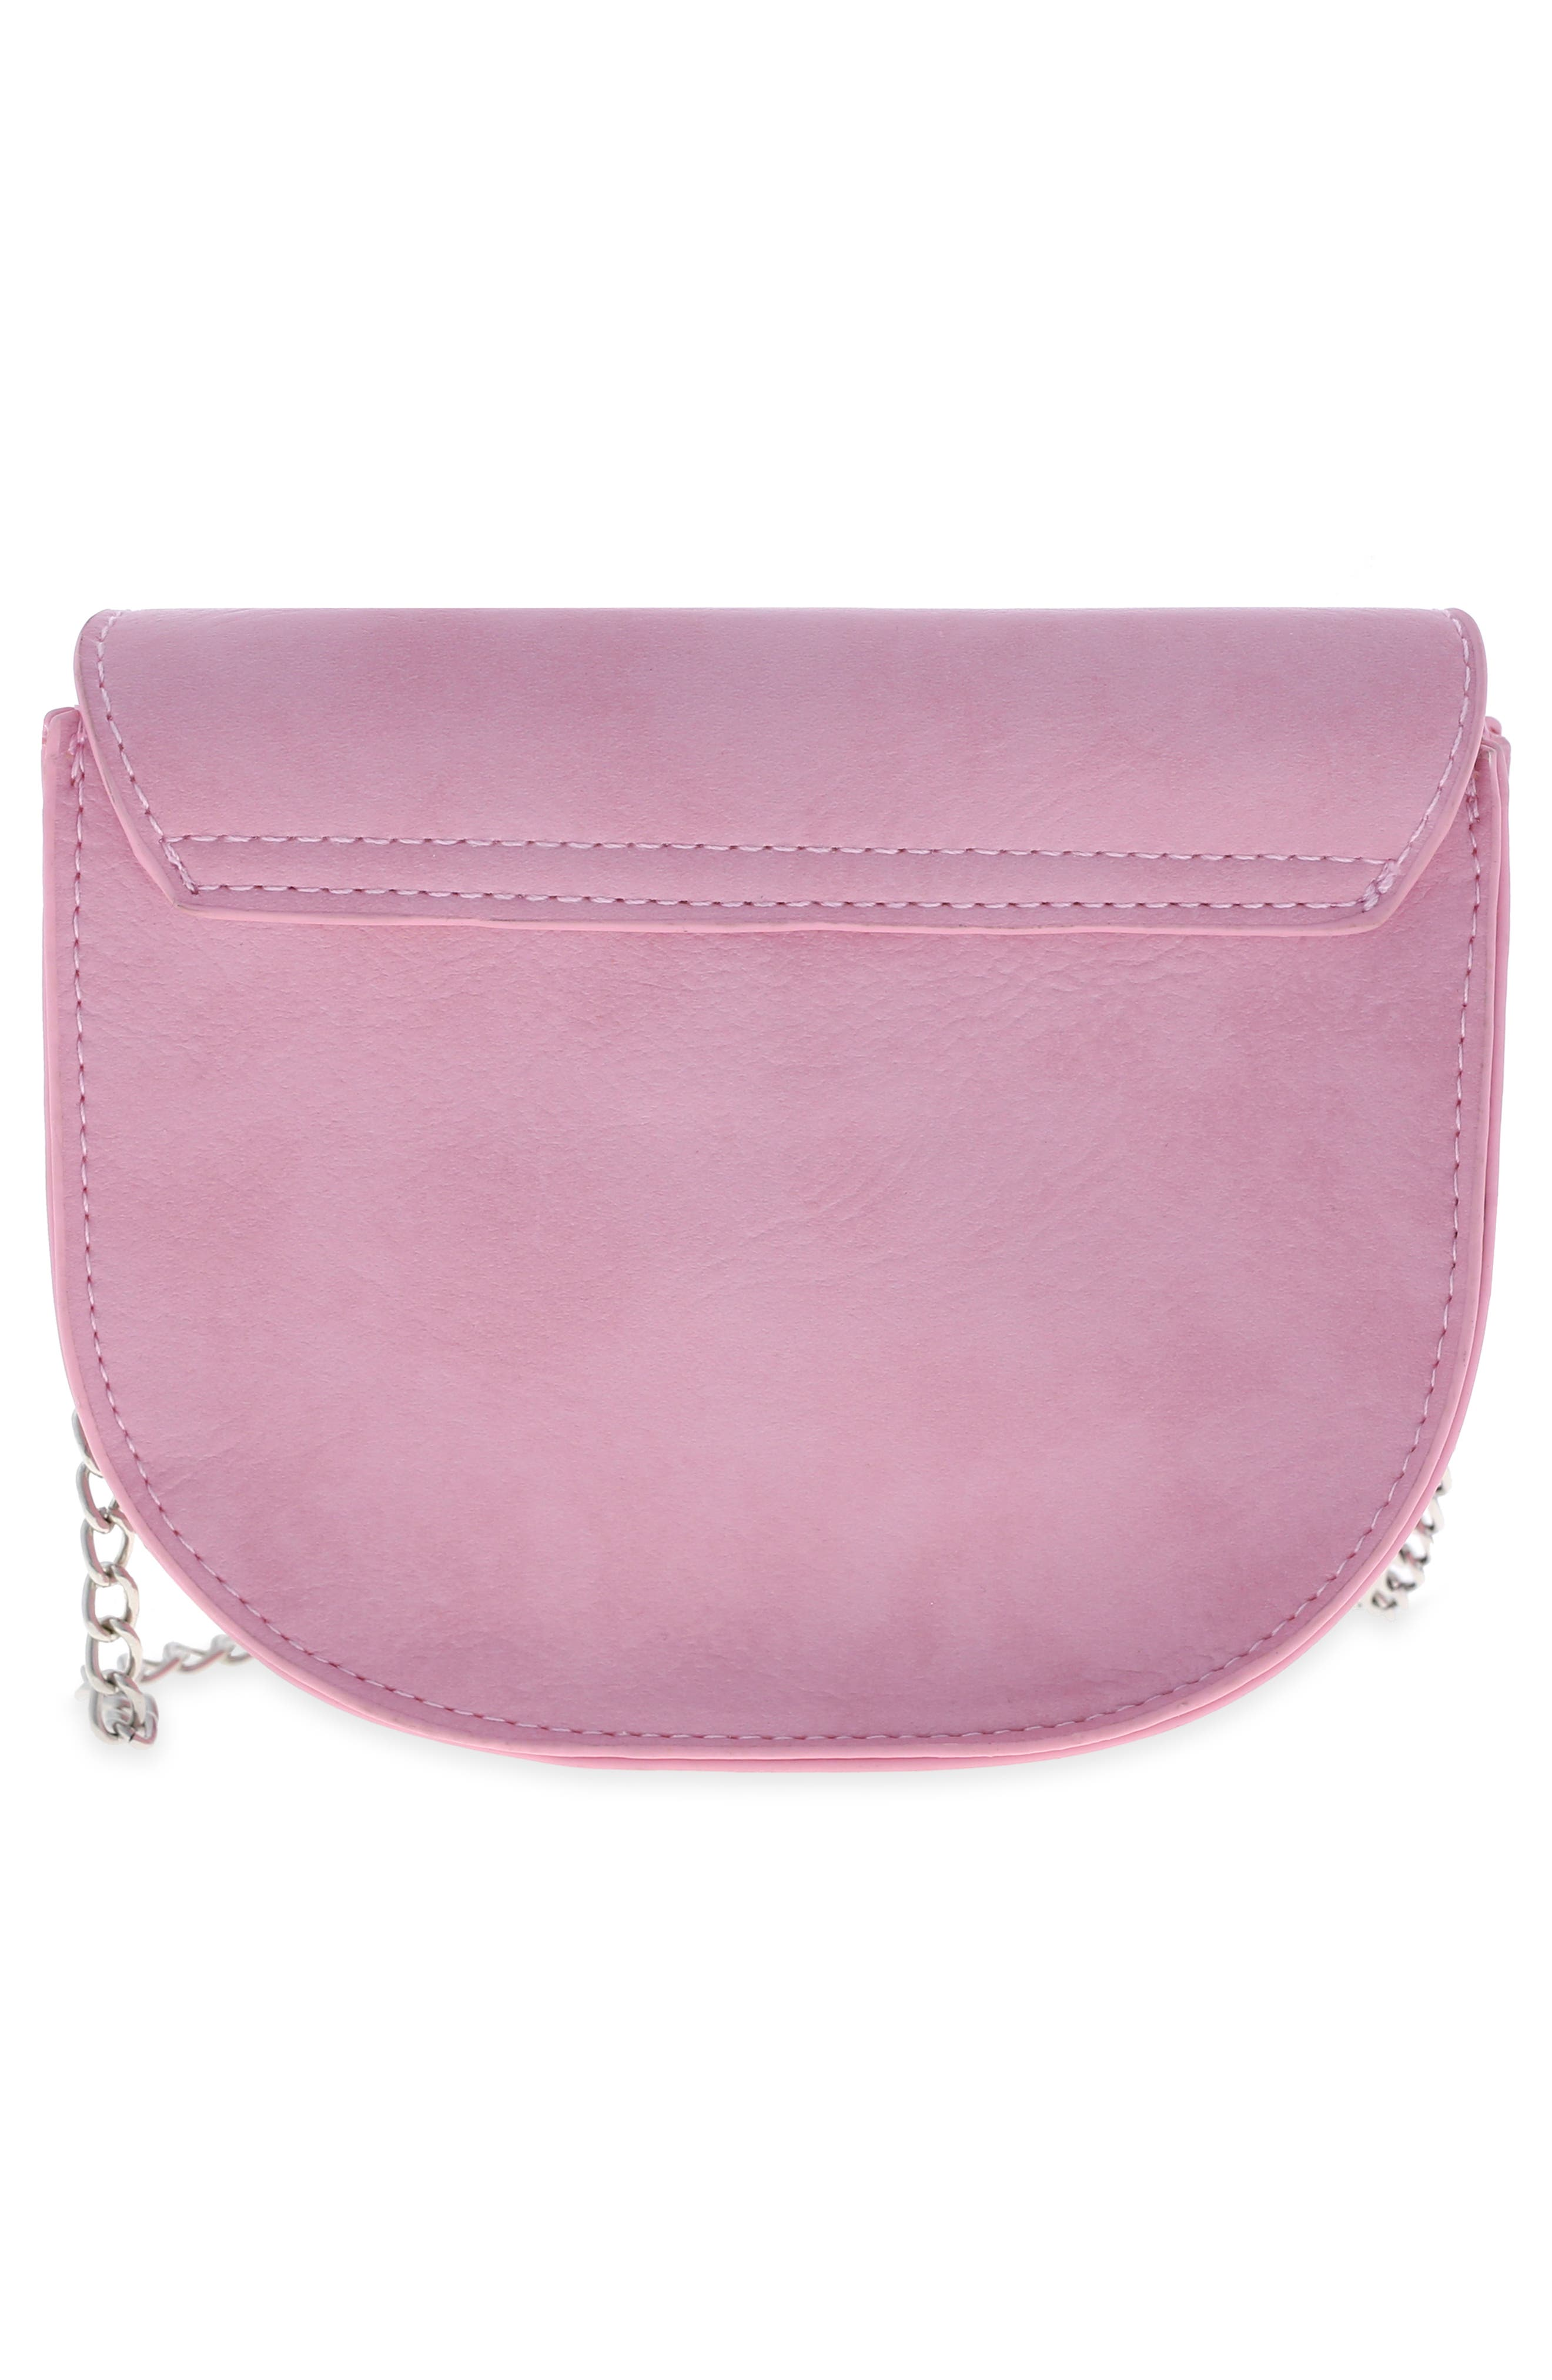 Studded Bag,                             Alternate thumbnail 2, color,                             Pink Combo